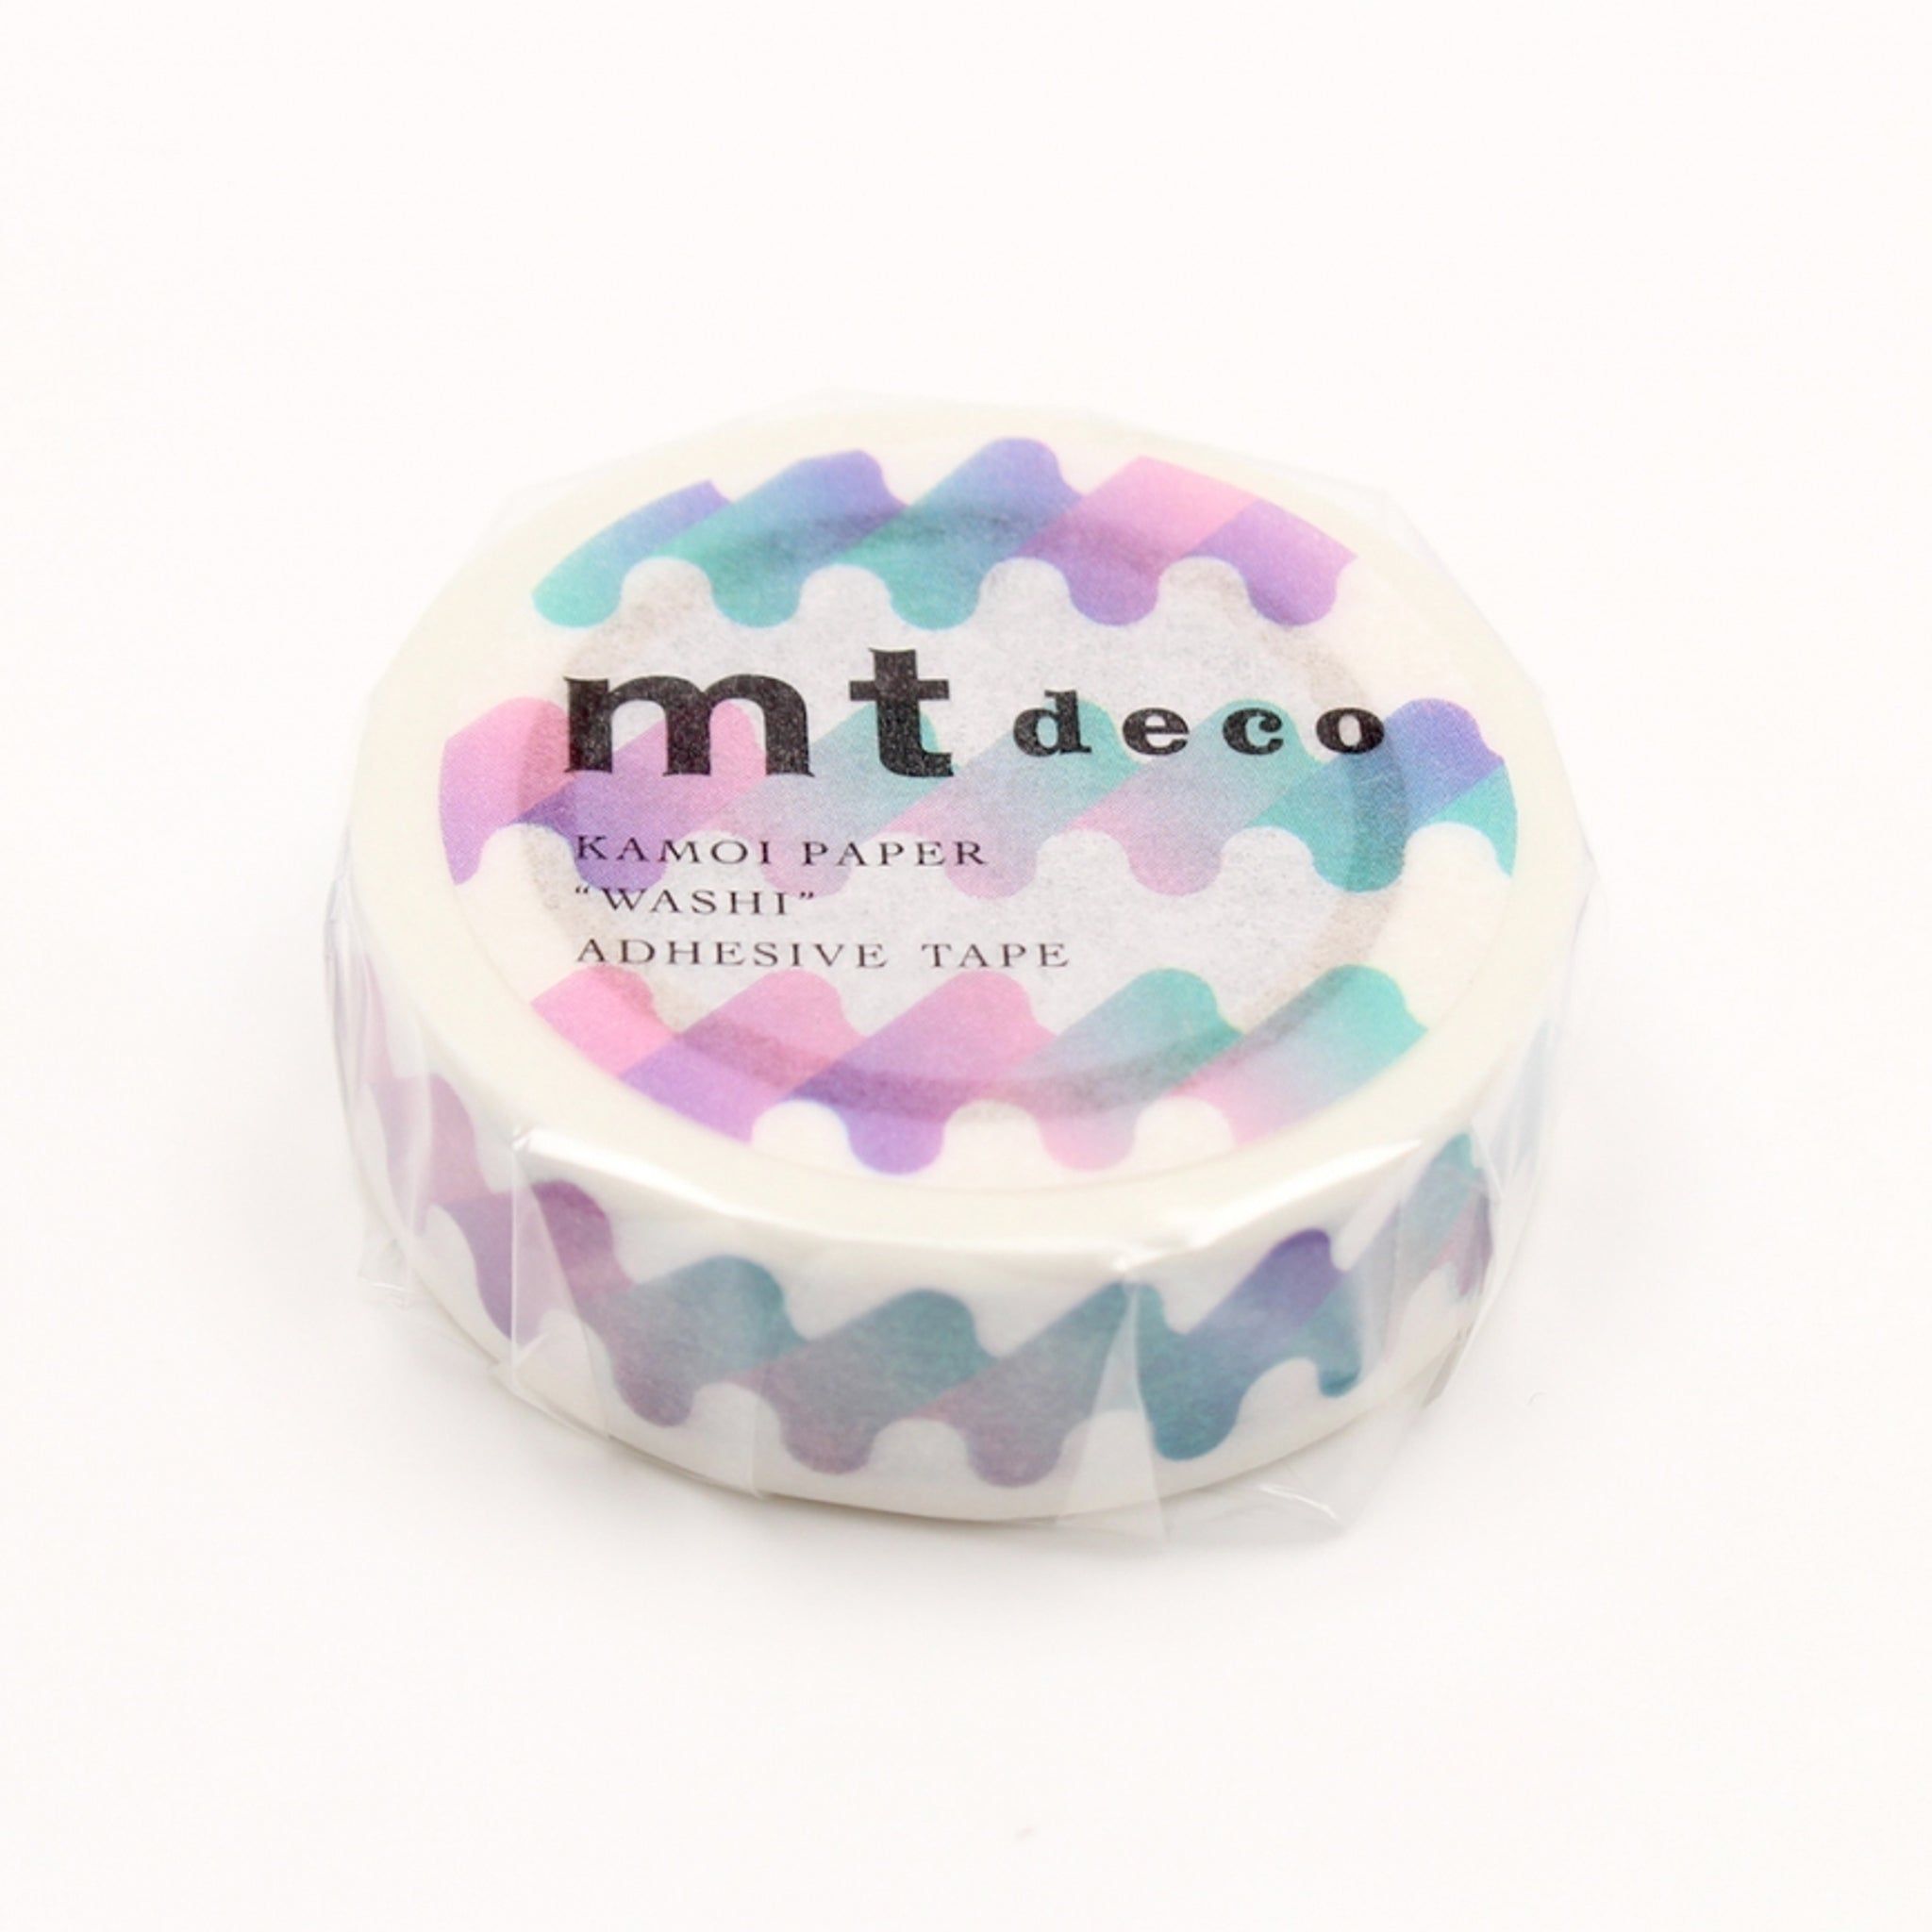 MT Deco Washi Tape Waving Blue